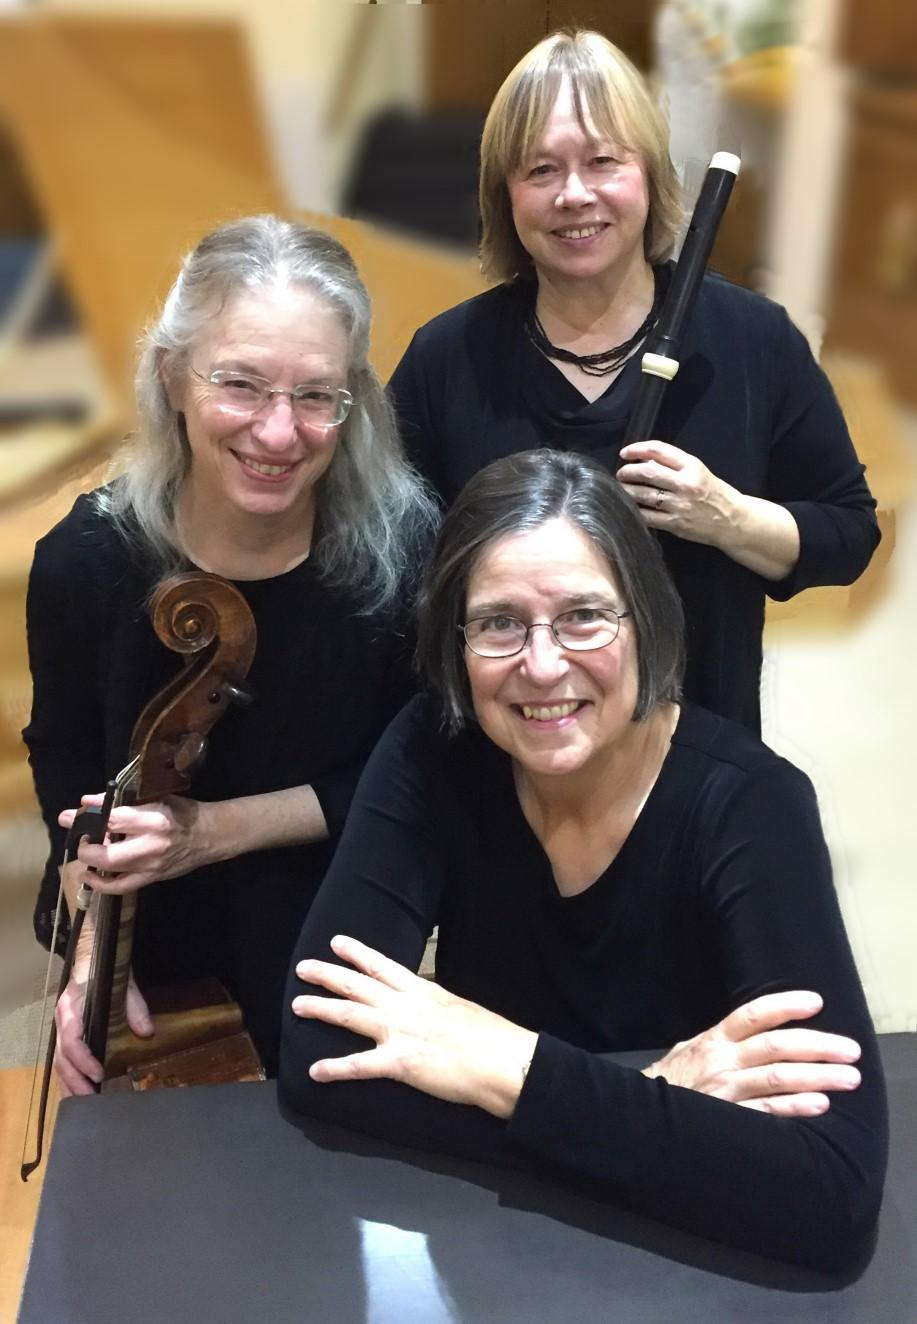 Marion Baroque The members of Marion Baroque include harpsichordist and organist Christa Rakich, viola da gambist and cellist Alice Robbins, and Baroque flutist Wendy Rolfe.